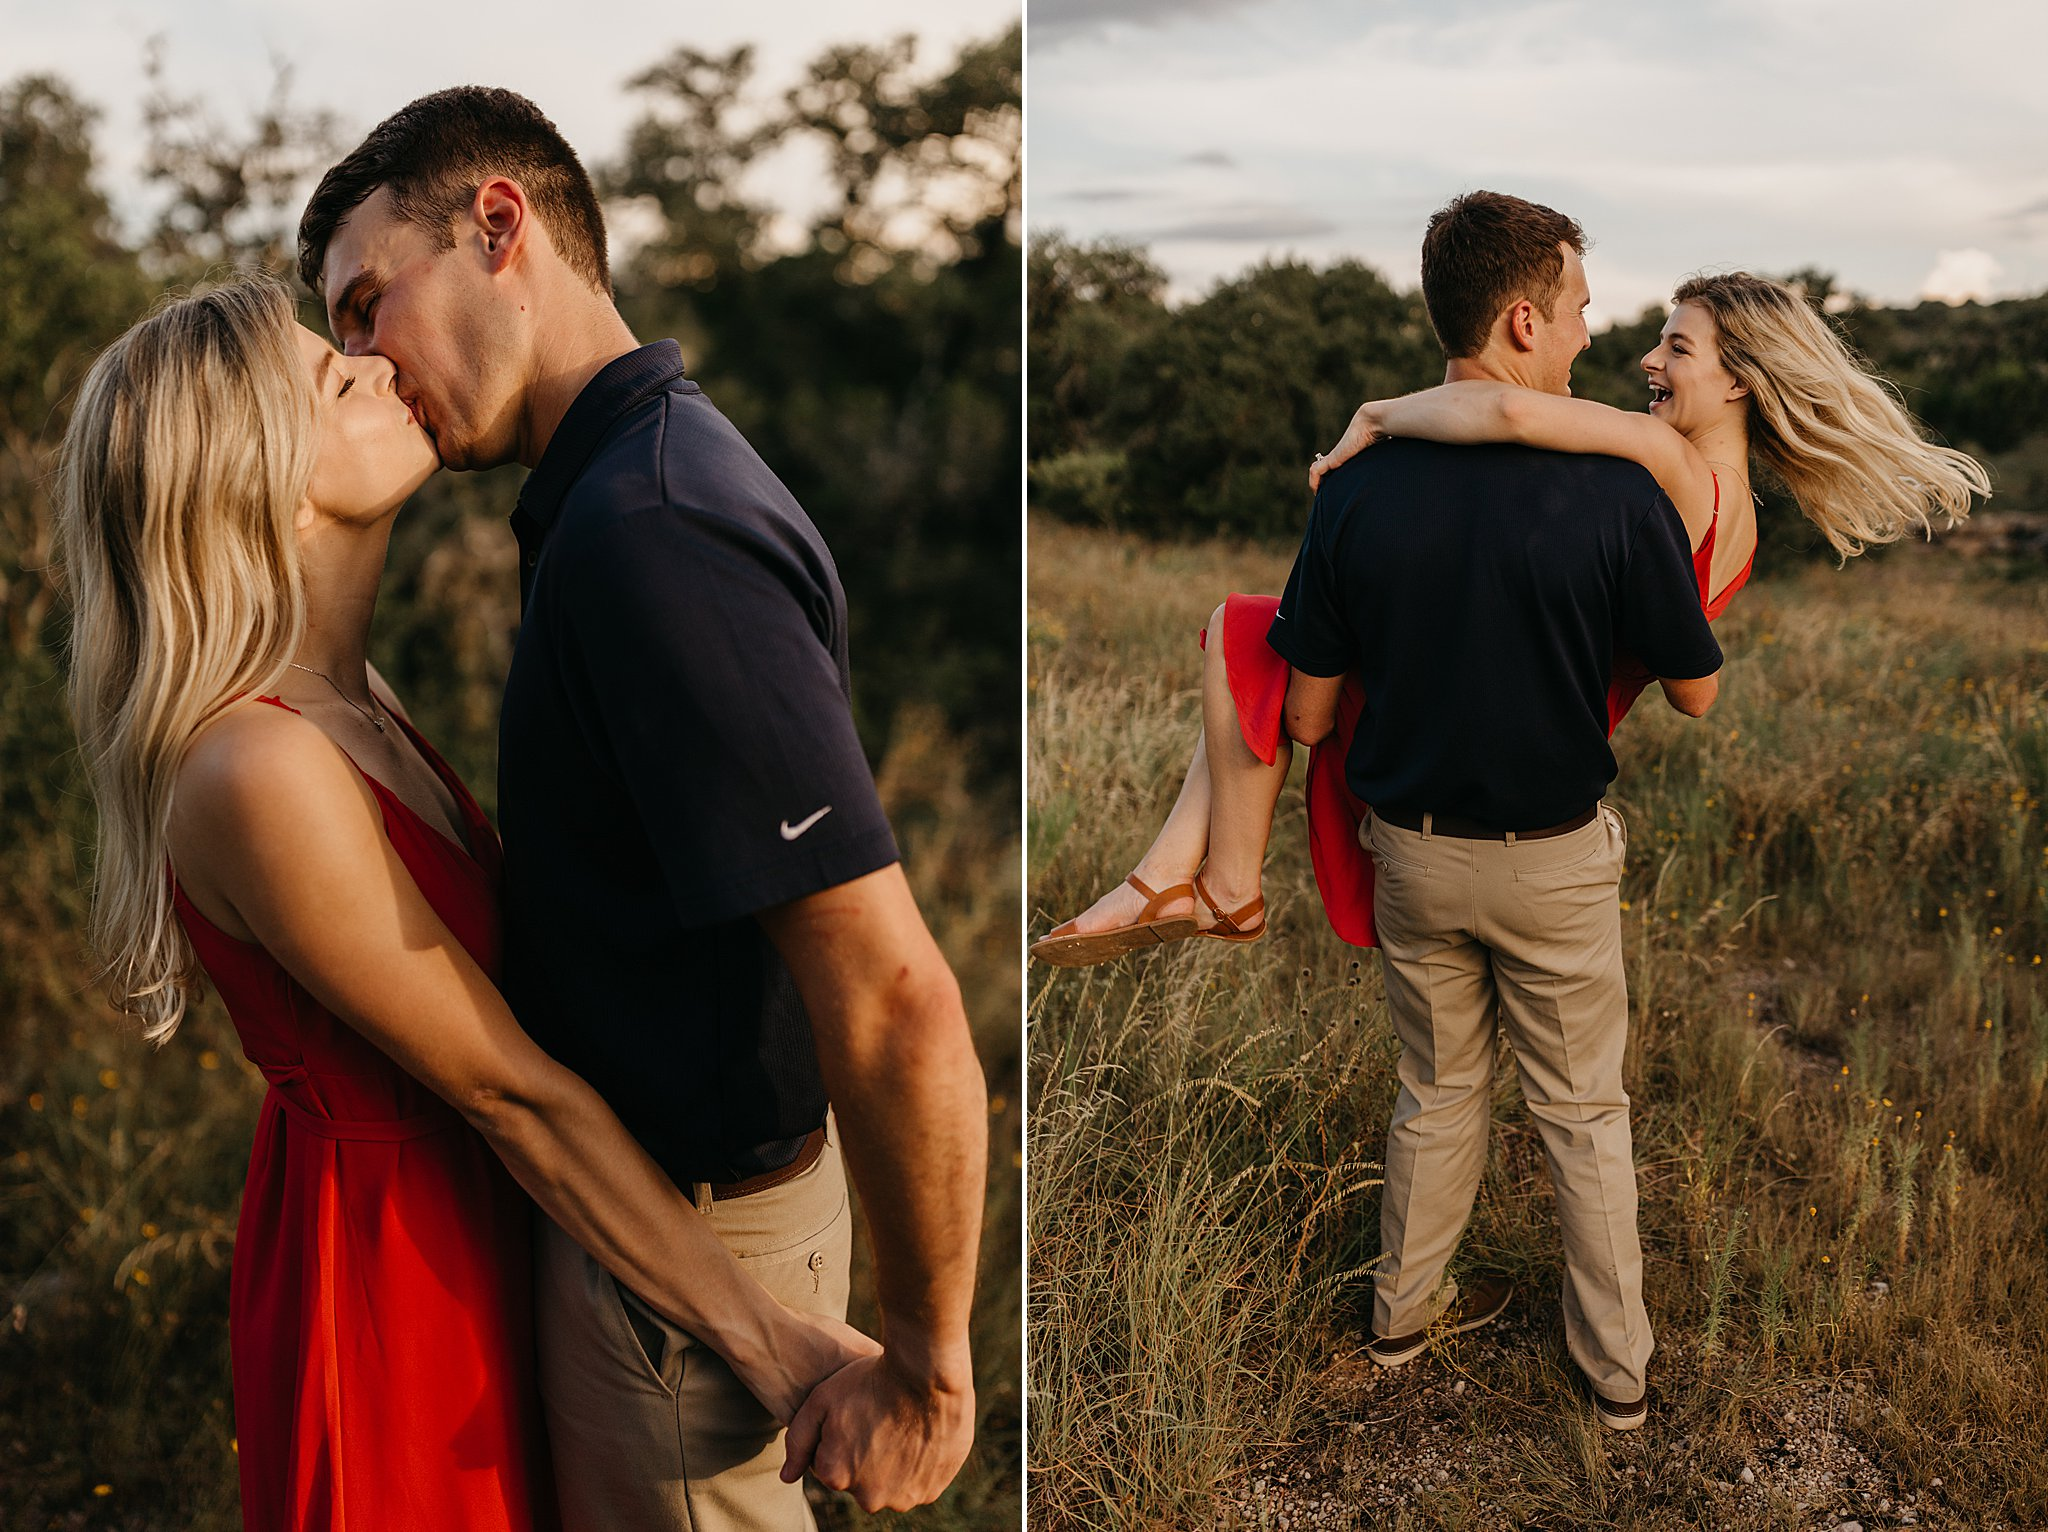 Wilderlove Co_Wedding Photographer_Dripping Springs Photography_Adventure Engagemenet_Rock Climbing Engagement_Hill Country Photographer_North Texas Photographer_0022.jpg